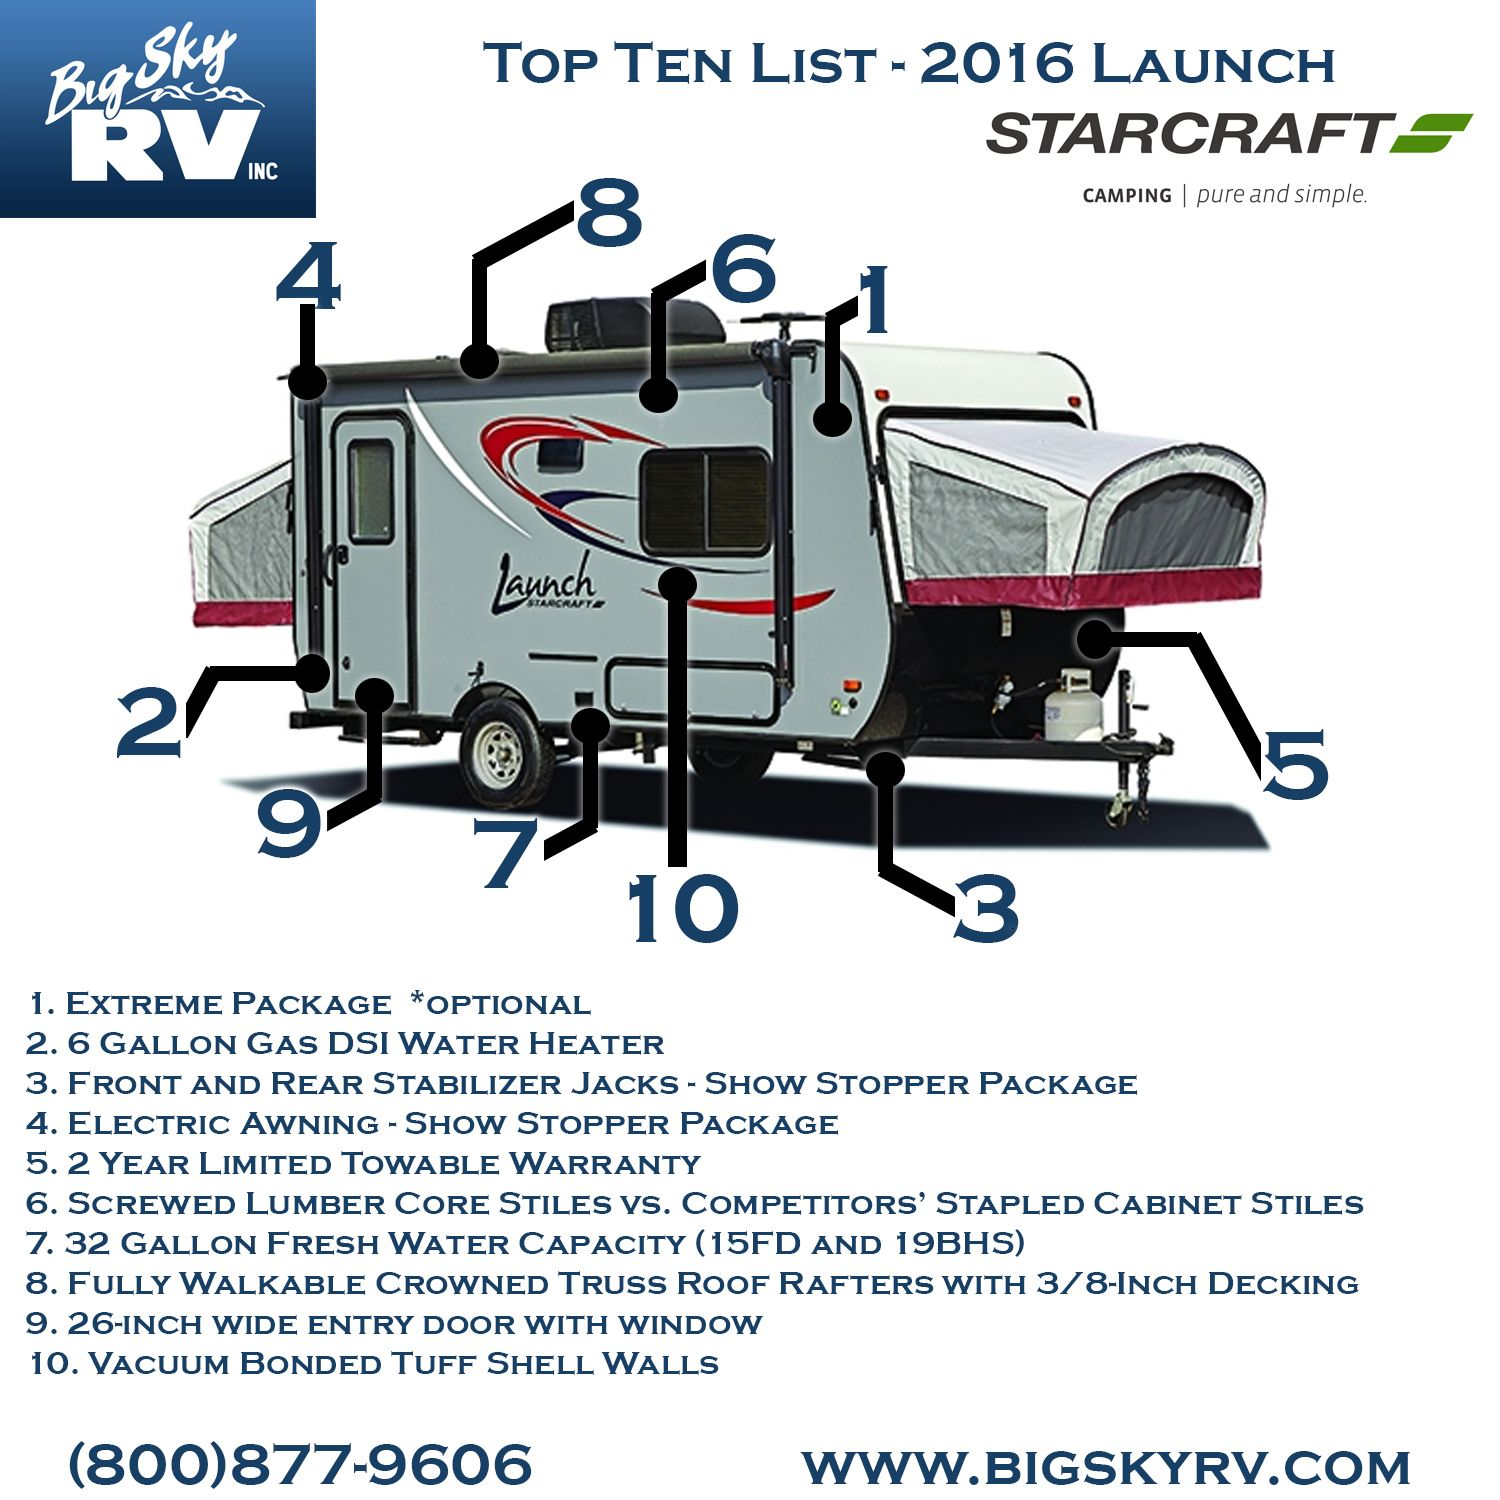 As The Name Implies The Entry Level Launch Lets Customers Launch Their Camping Experience At An Affordable Price Designed Travel Trailer Small Suv Camping